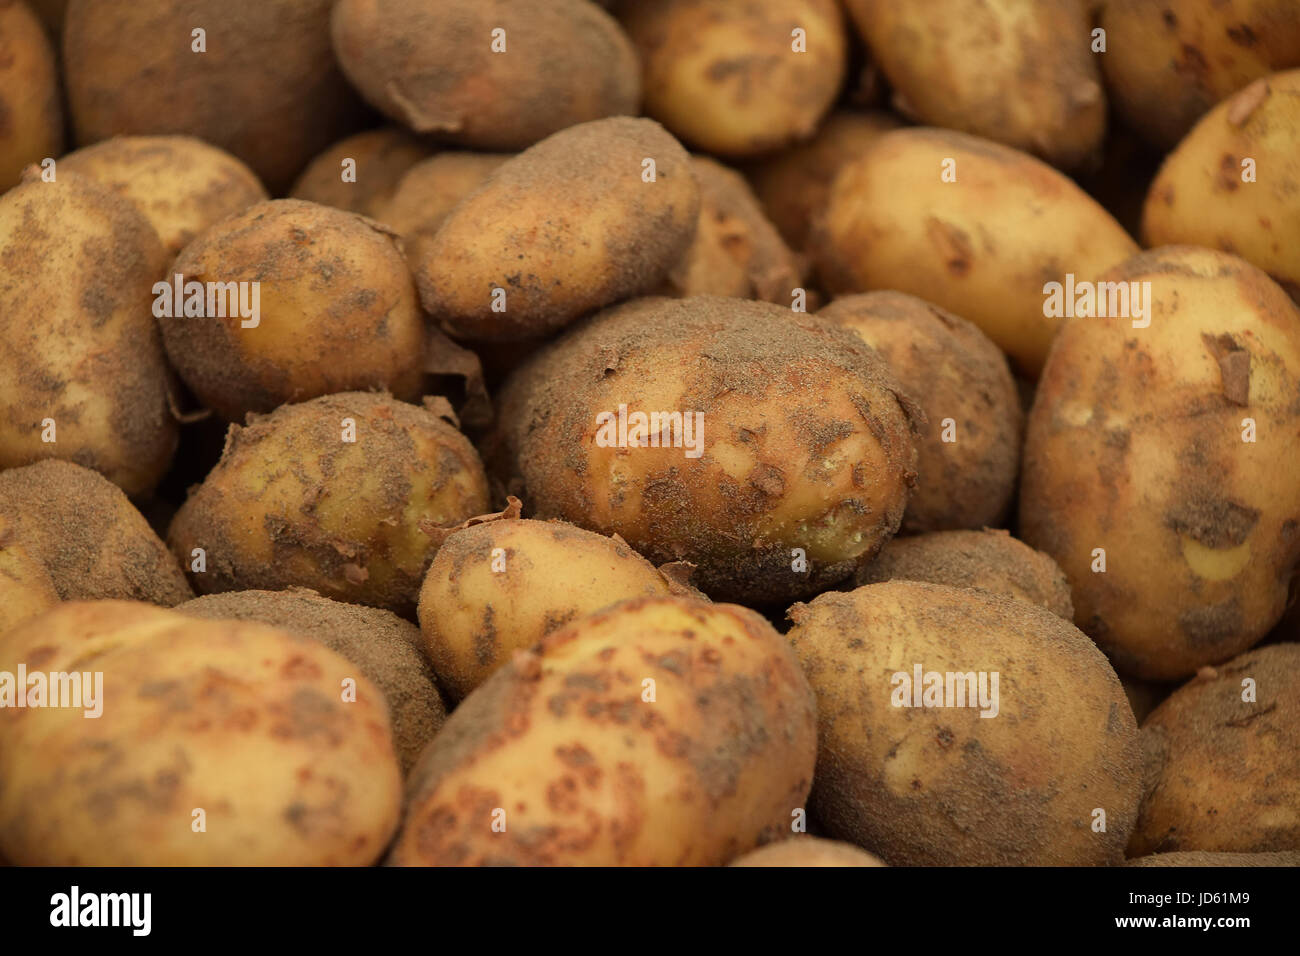 Heap of new farm potato with ground at retail market display close up, low angle view - Stock Image